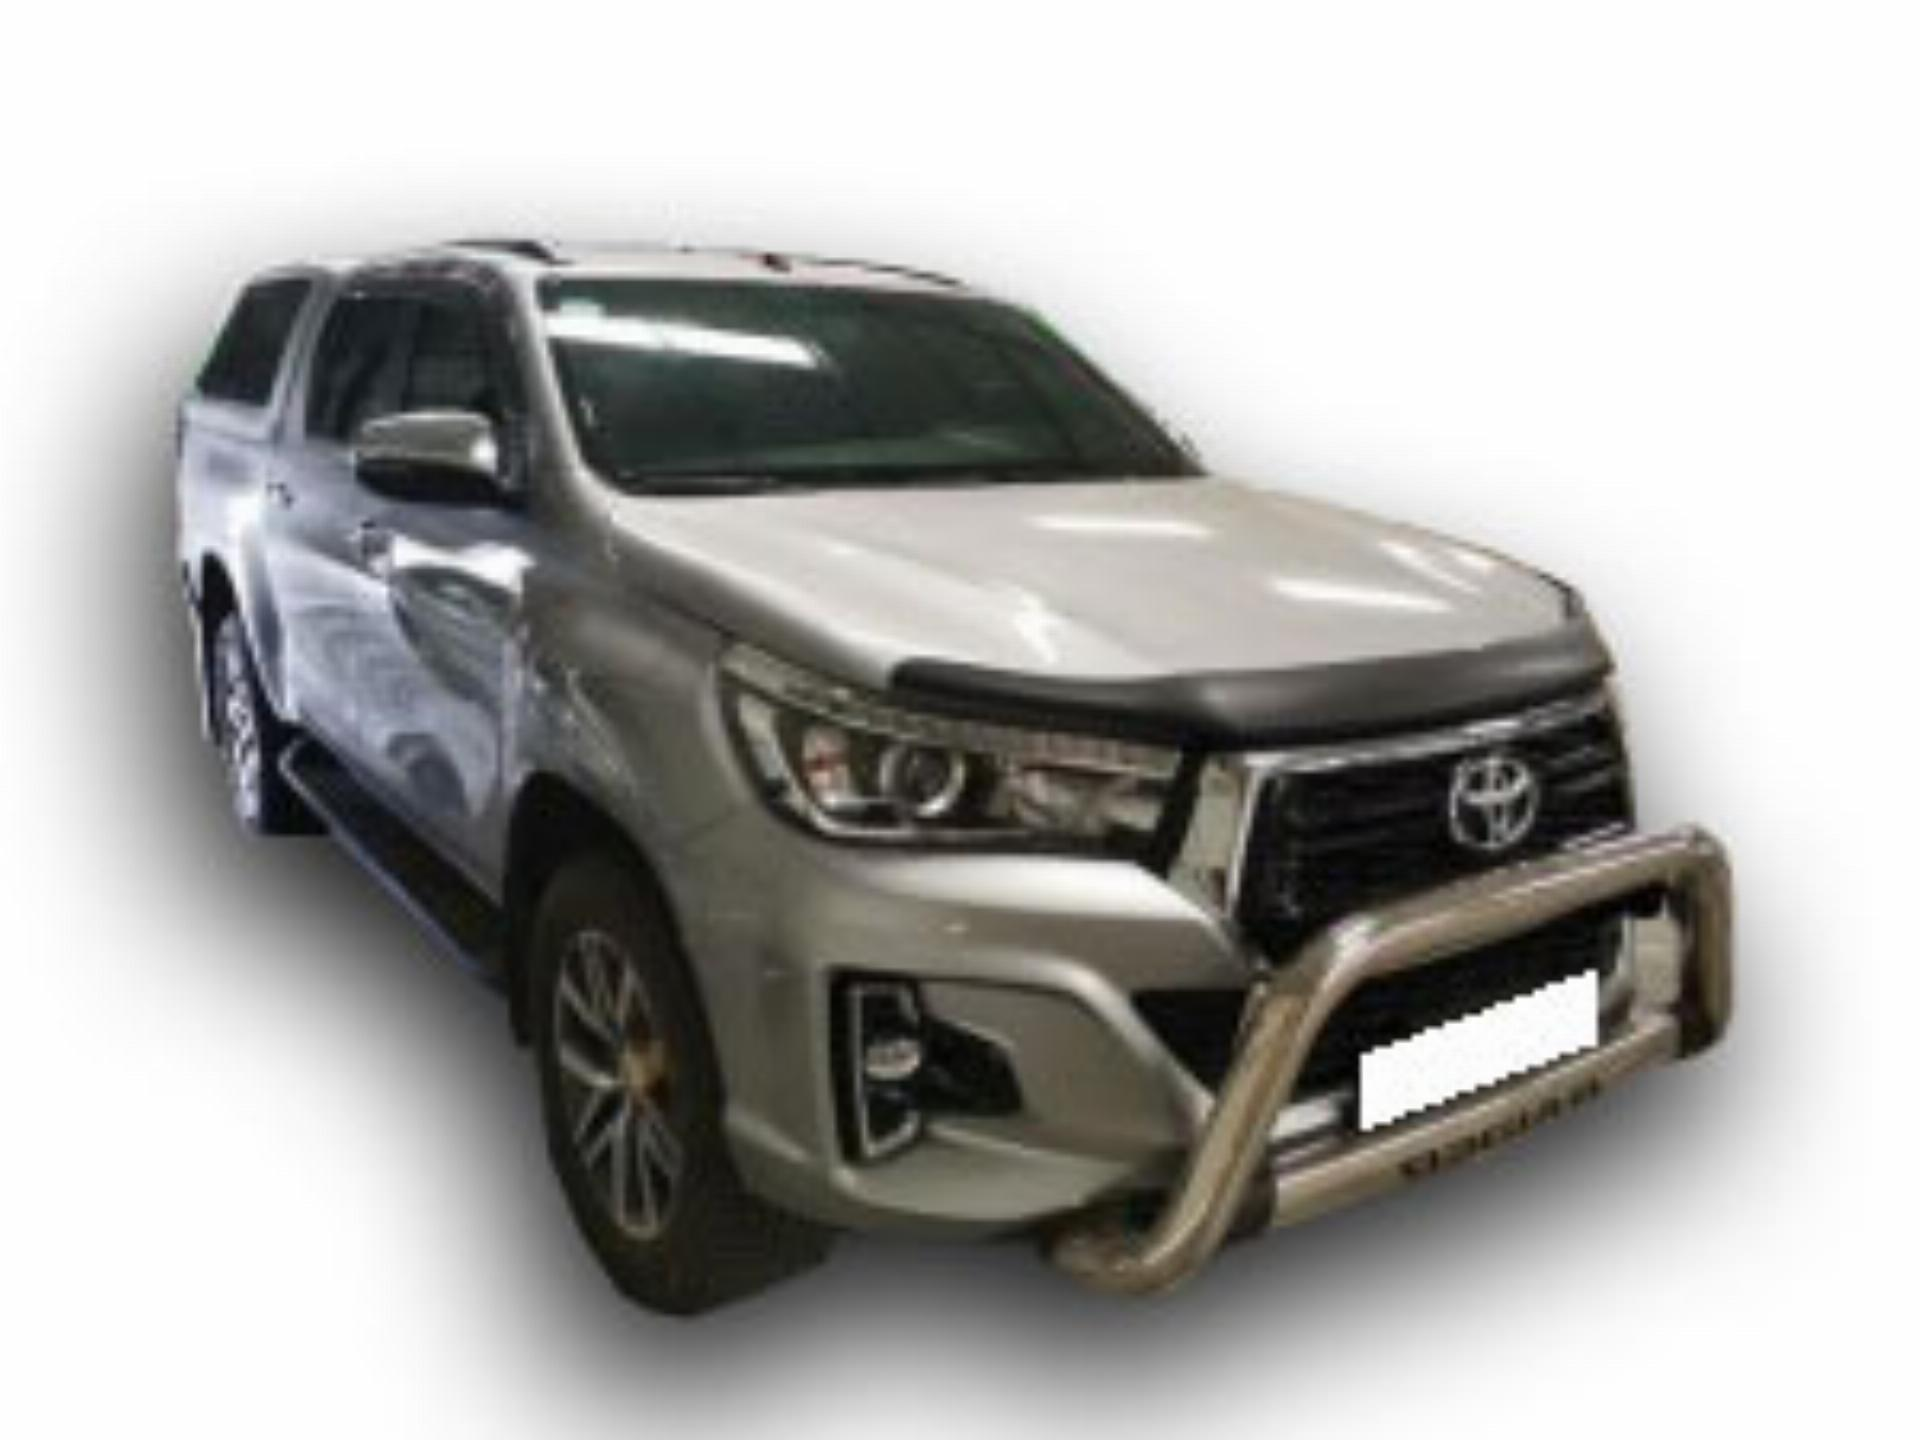 Toyota Hilux 2.8 GD-6 RB